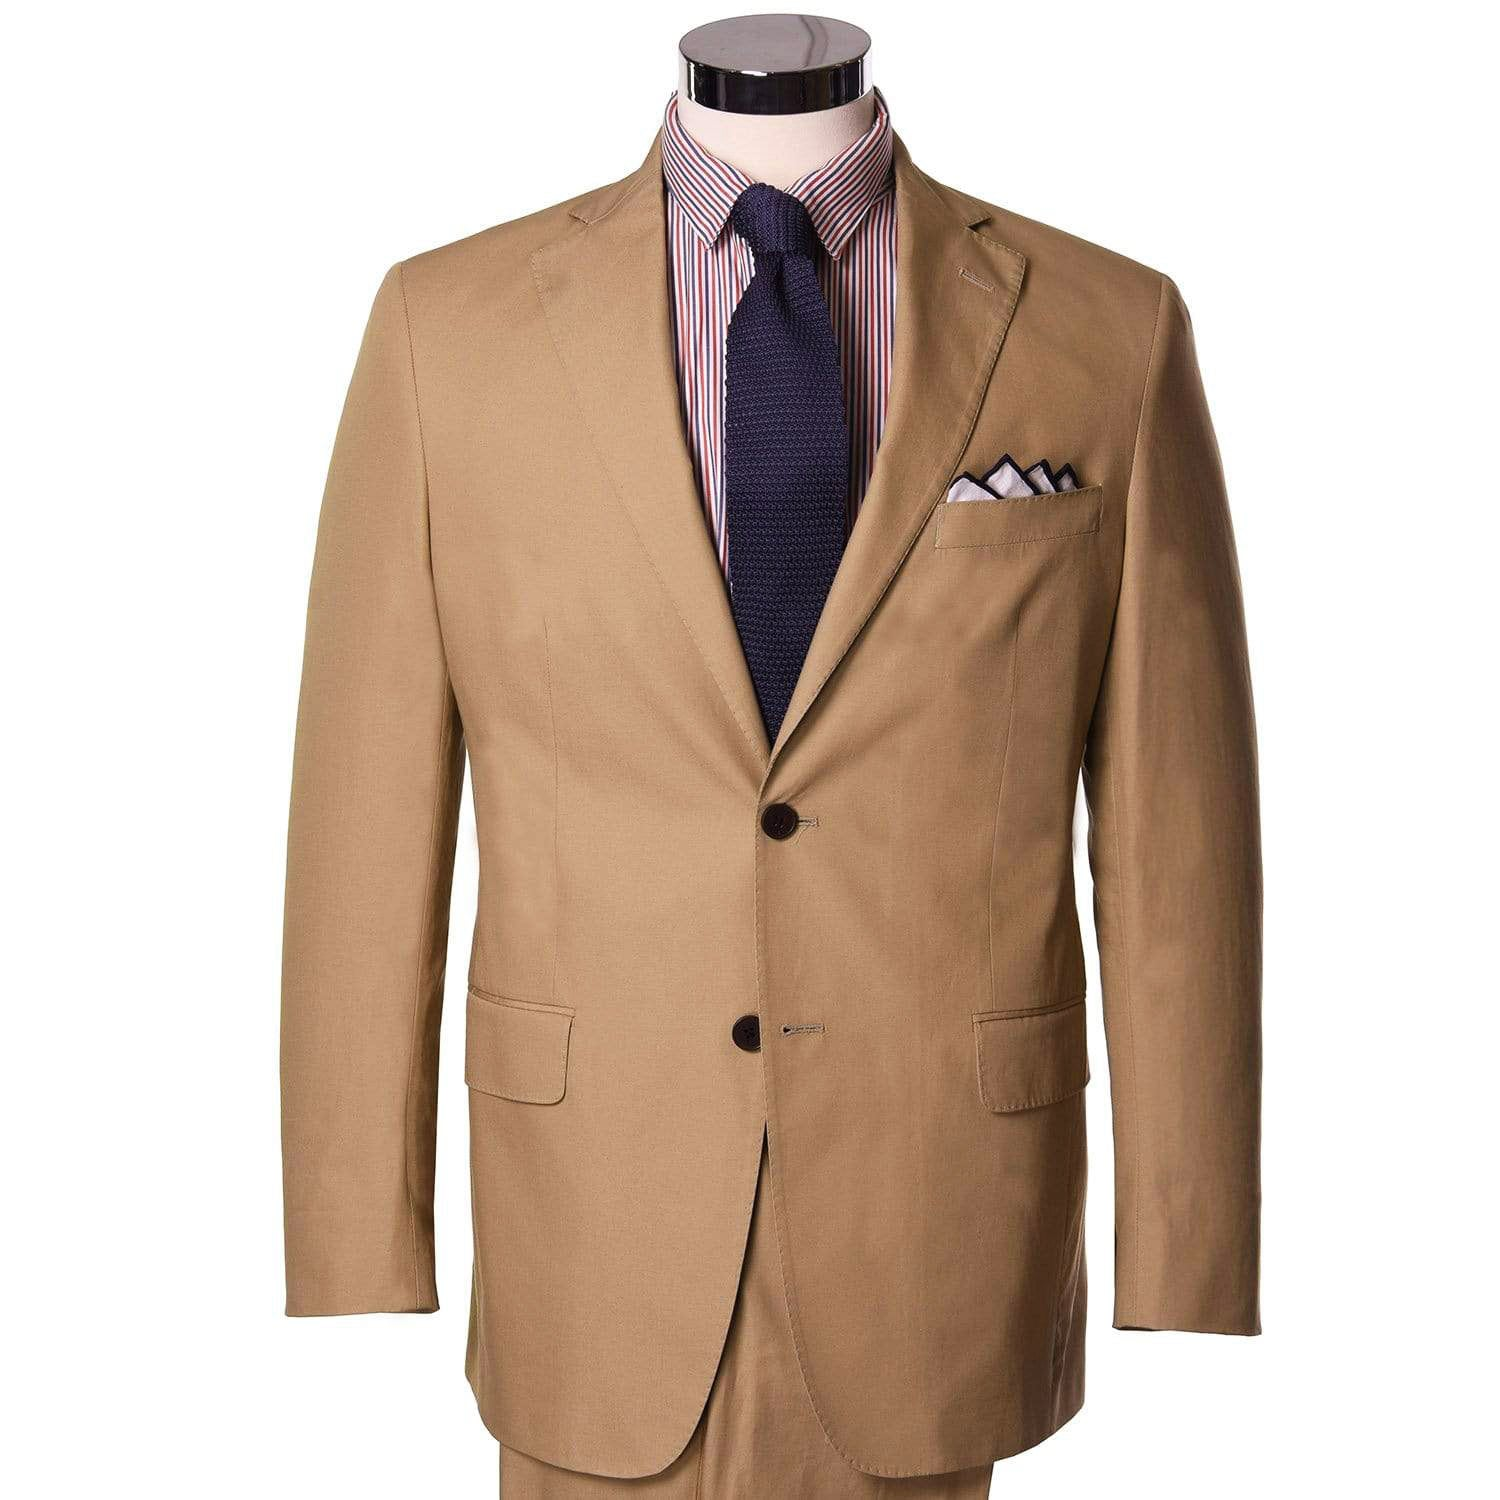 Praline Tan Poplin Sport Coat - Haspel Clothing